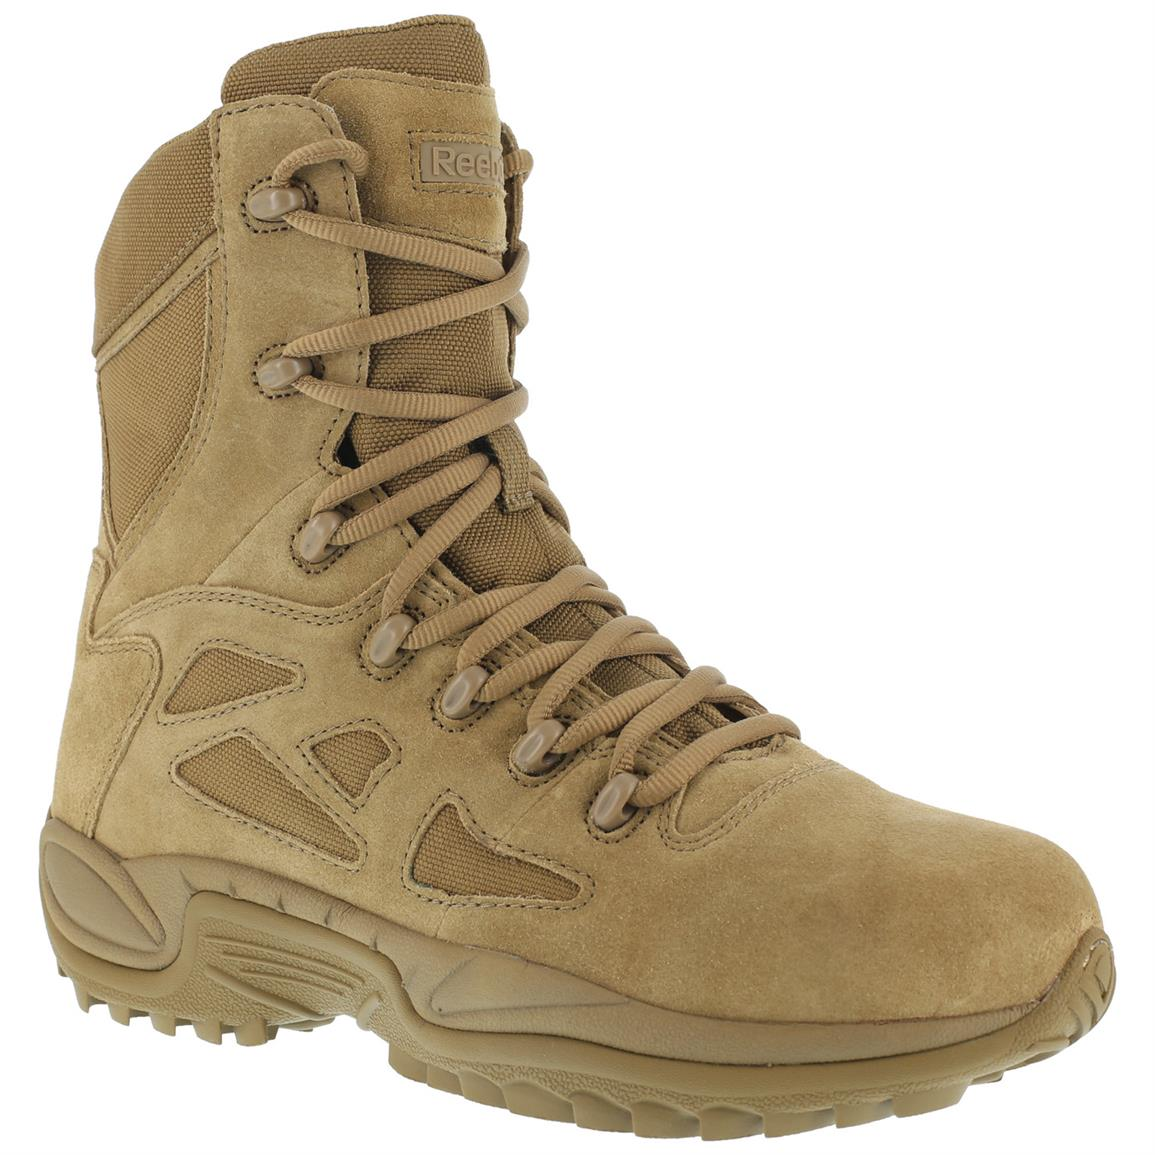 "Reebok 8"" Rapid Response RB Men's Combat Boots, Brown"